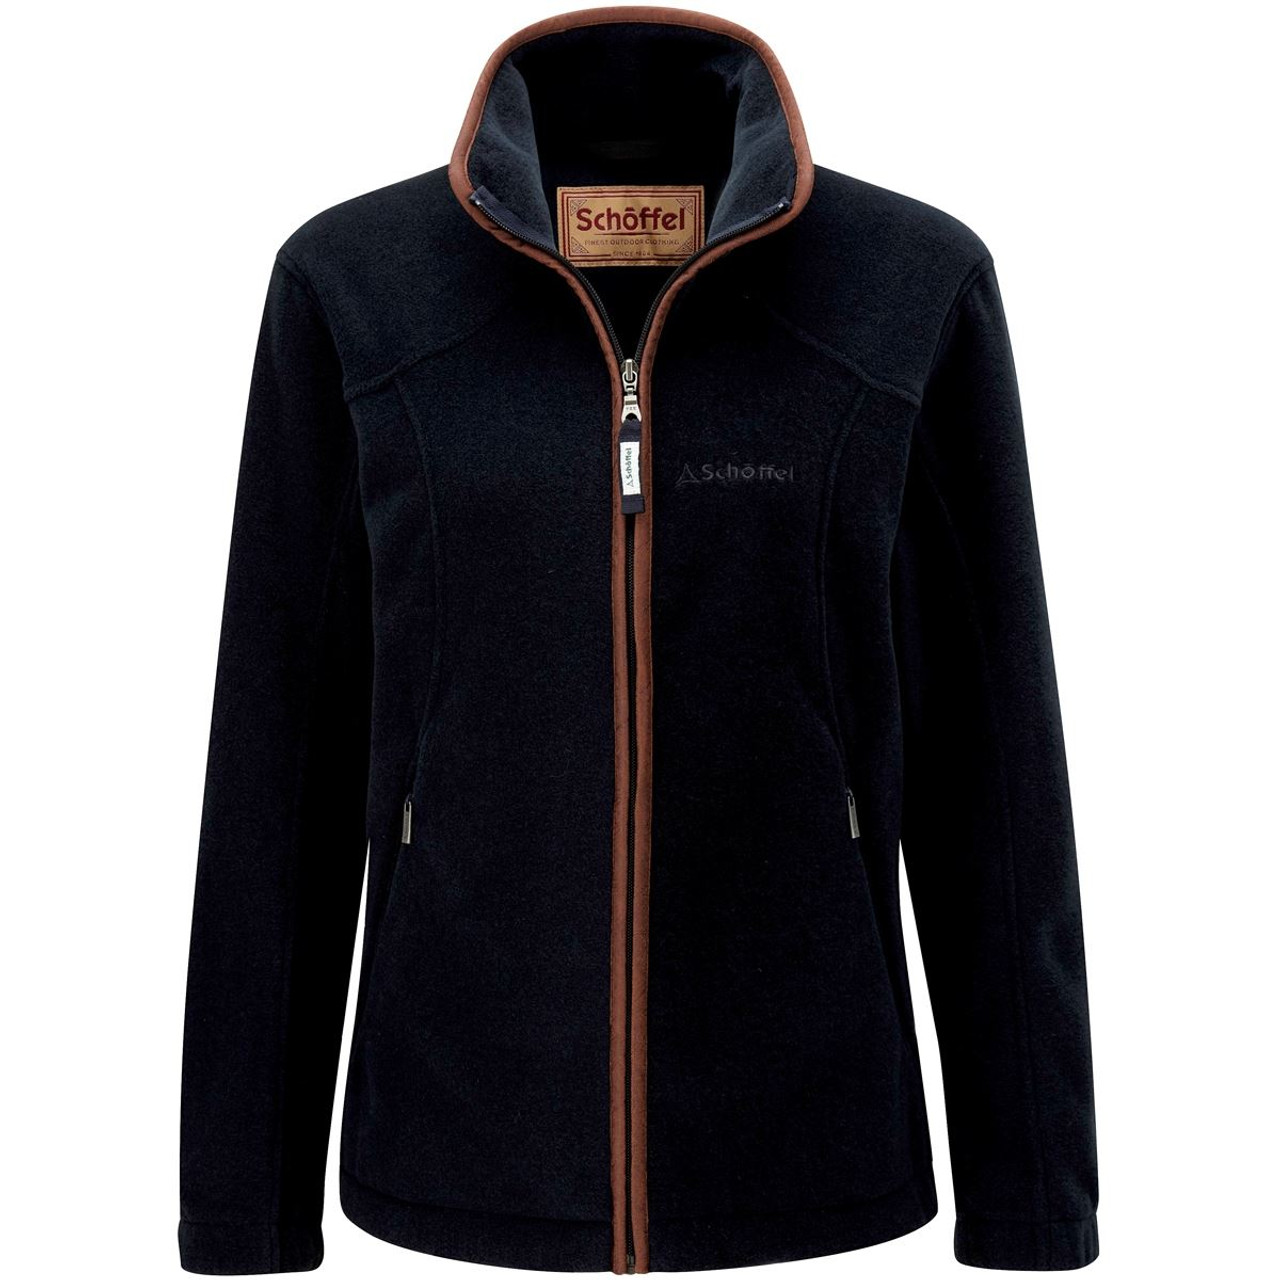 Schoffel Burley Ladies Fleece Jacket